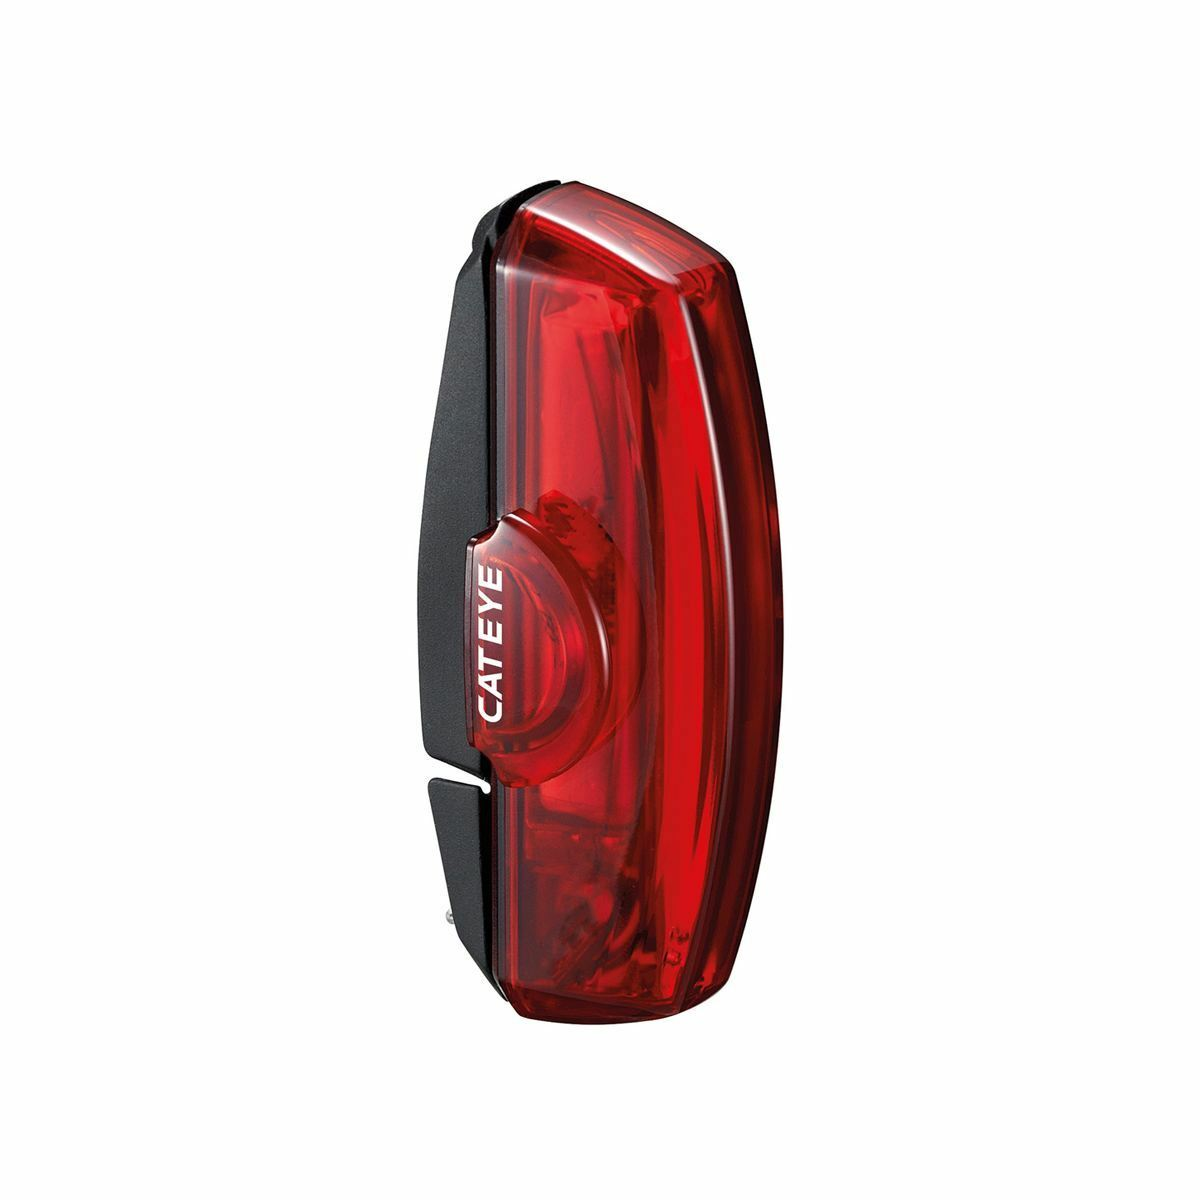 Bike Rear Light USB Rechargeable Cateye  Kinetic X2 Bicycle LED 3 Mode Tail Lamp  exclusive